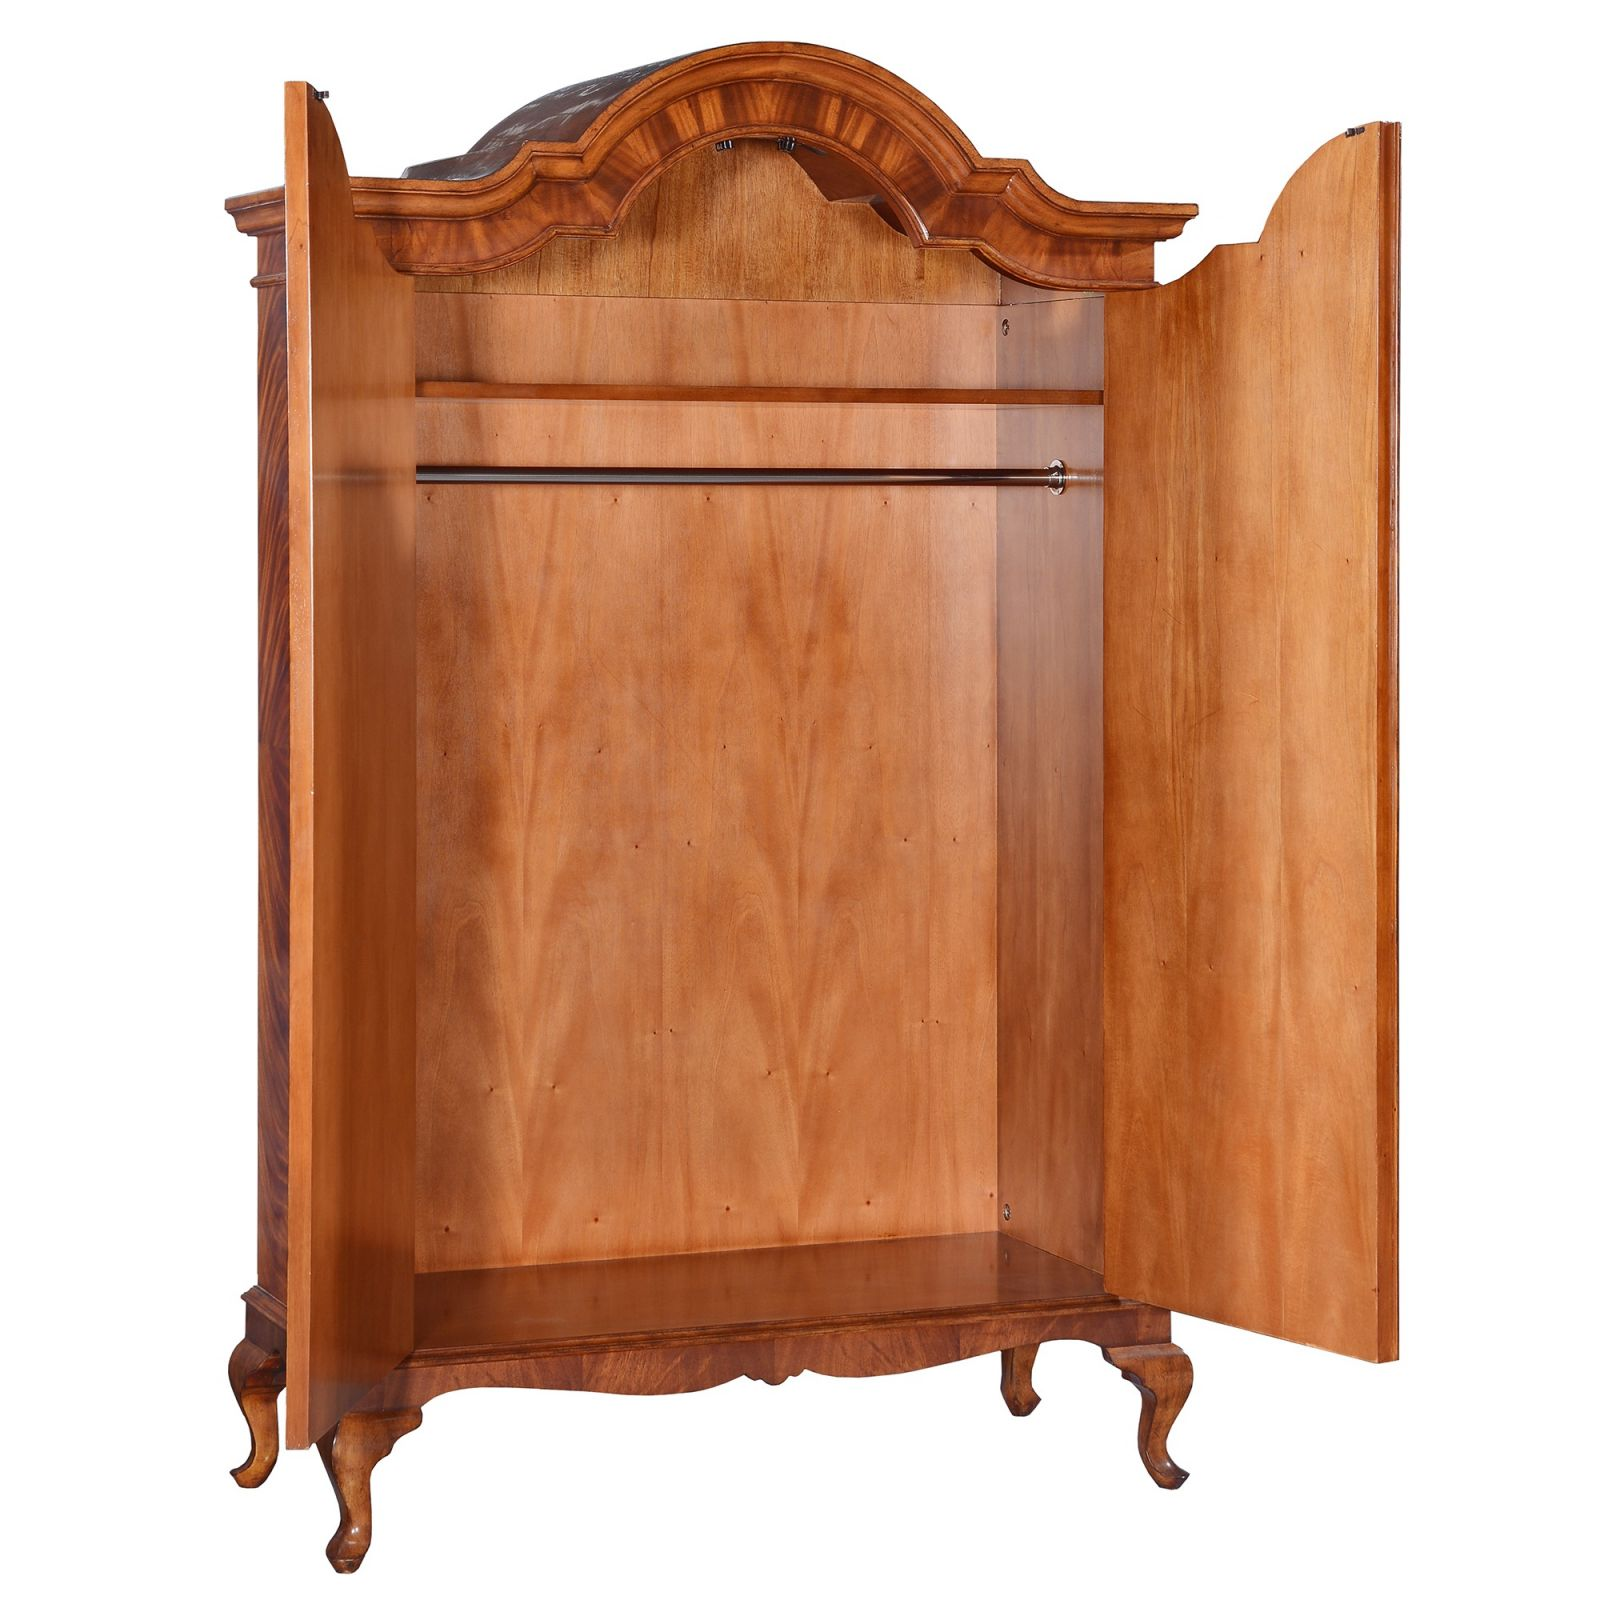 Flame mahogany wardrobe - bespoke sizes available